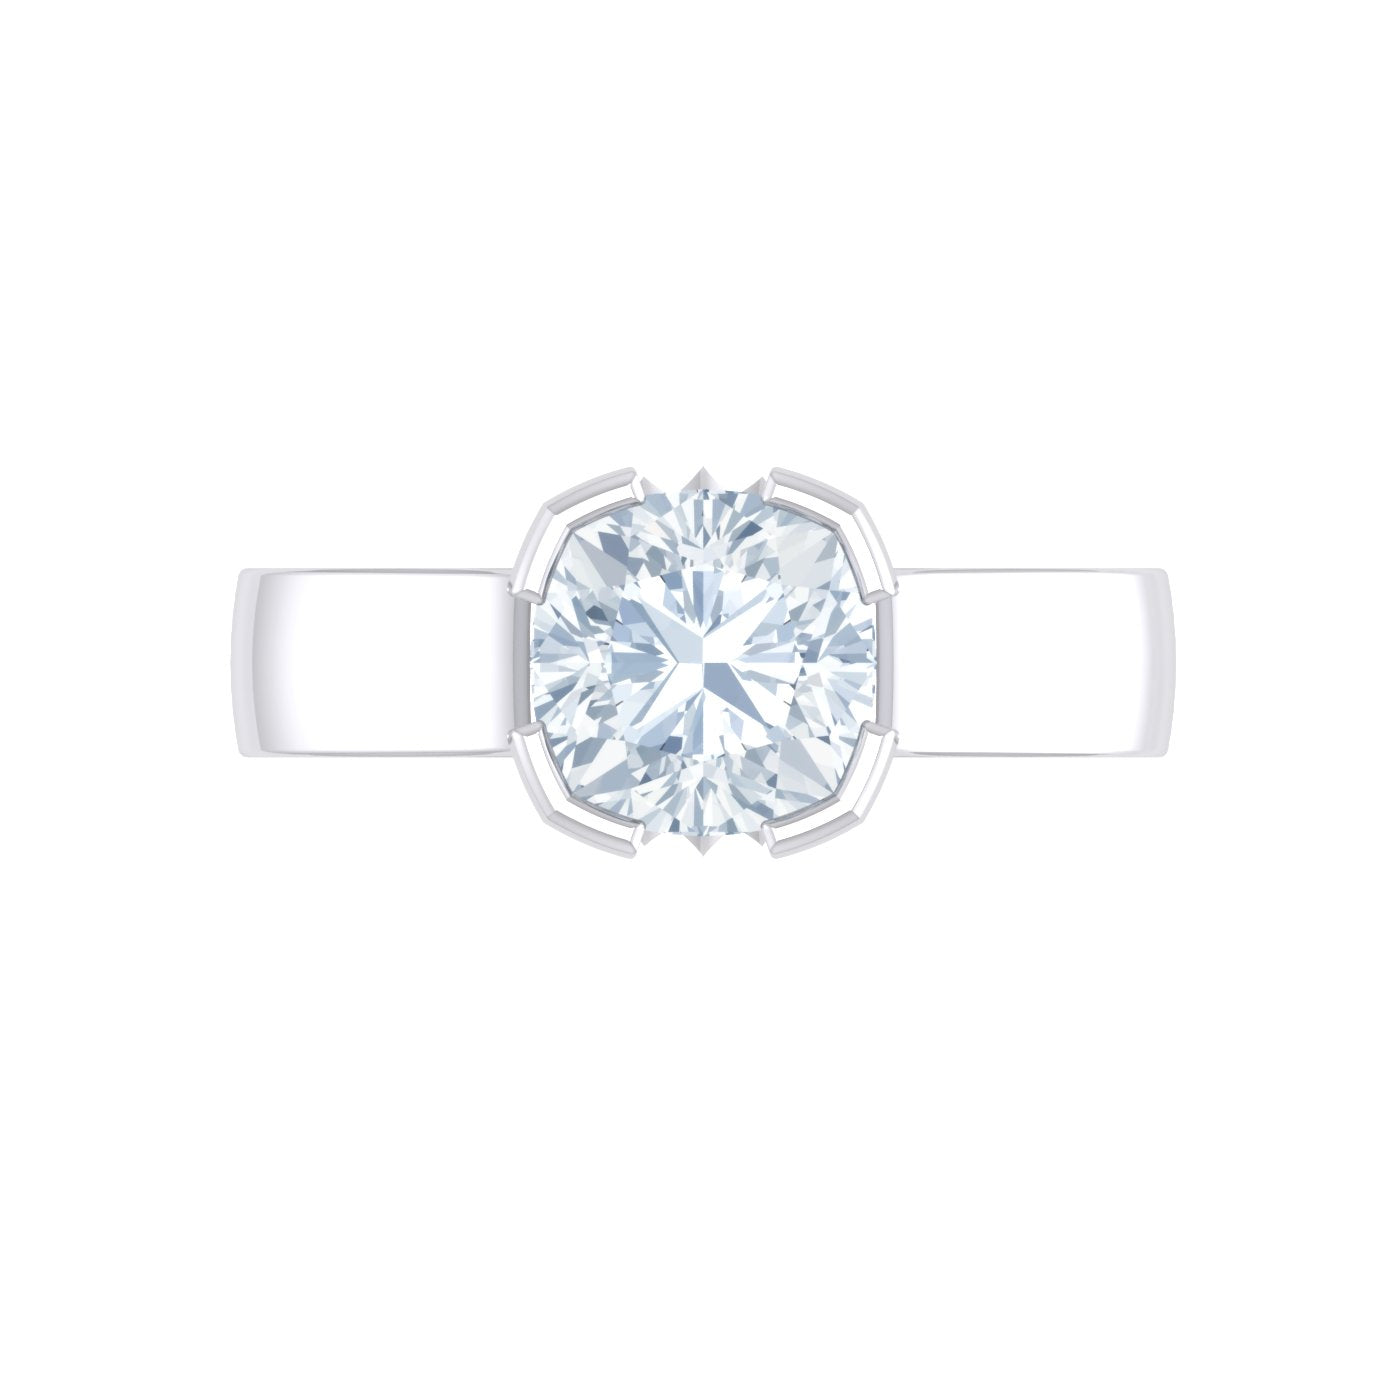 Alice Herald Solitaire Engagement Ring